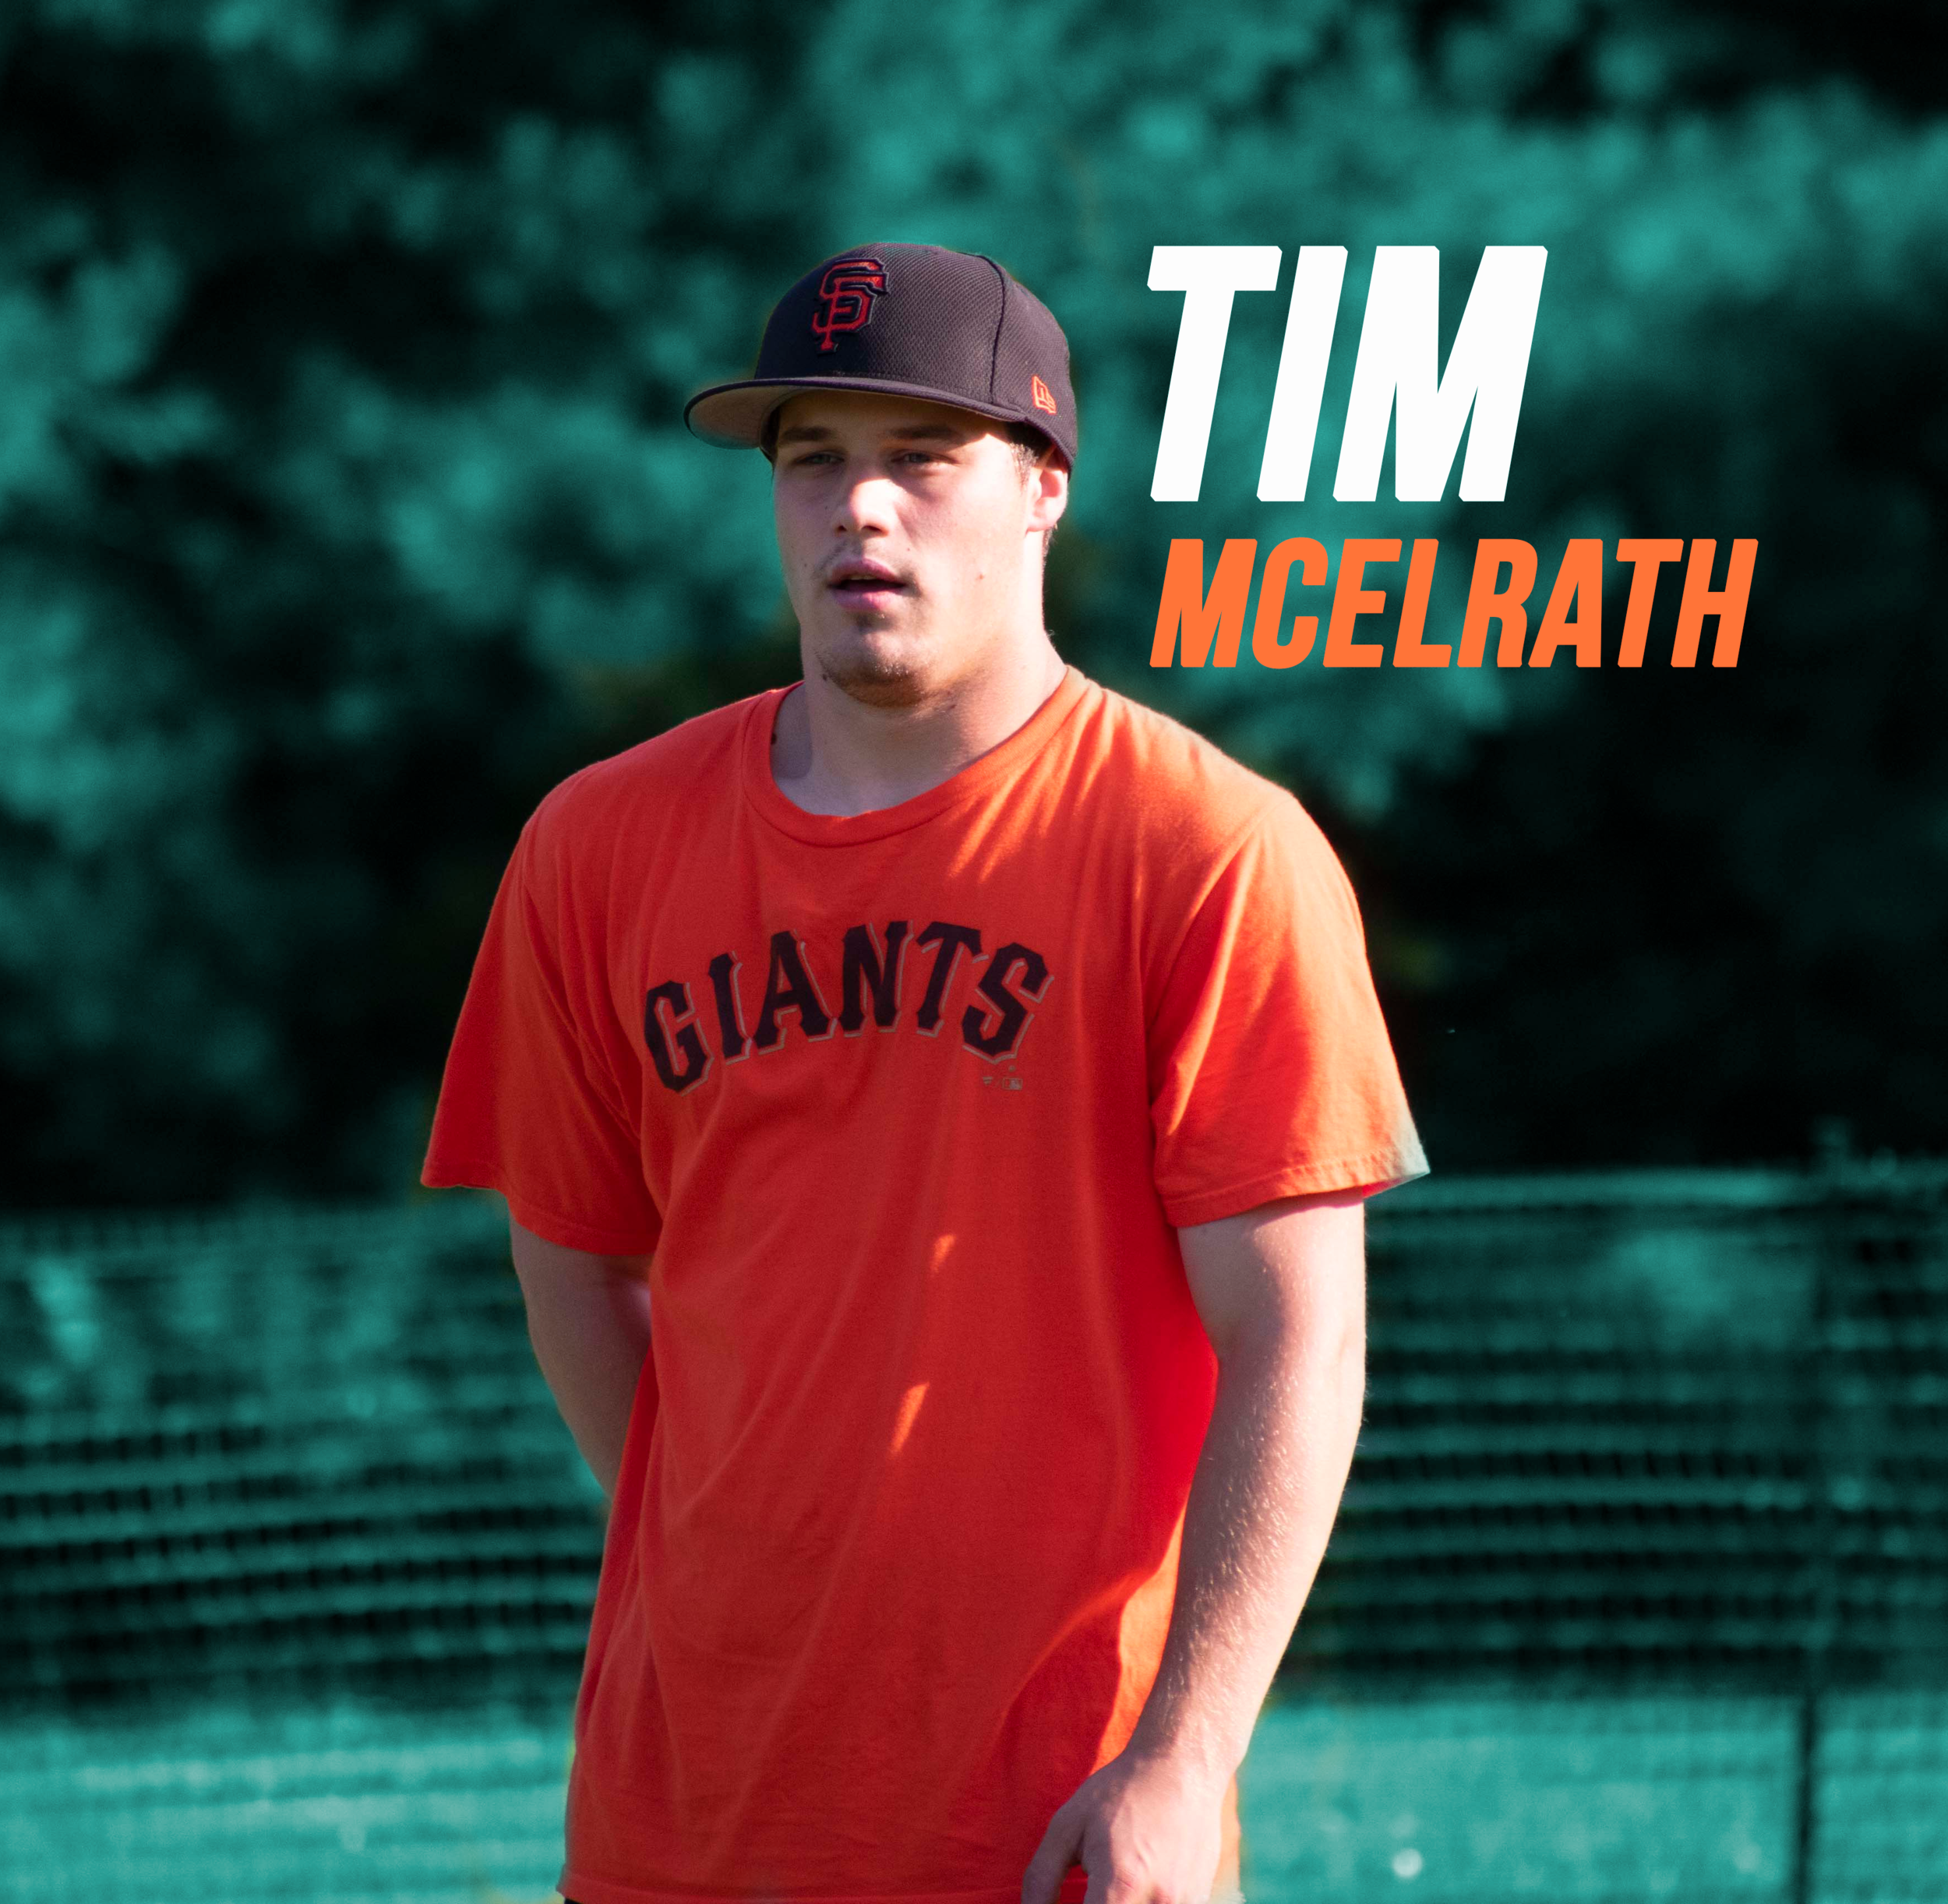 Tim McElrath GIANTS concept art hue.png